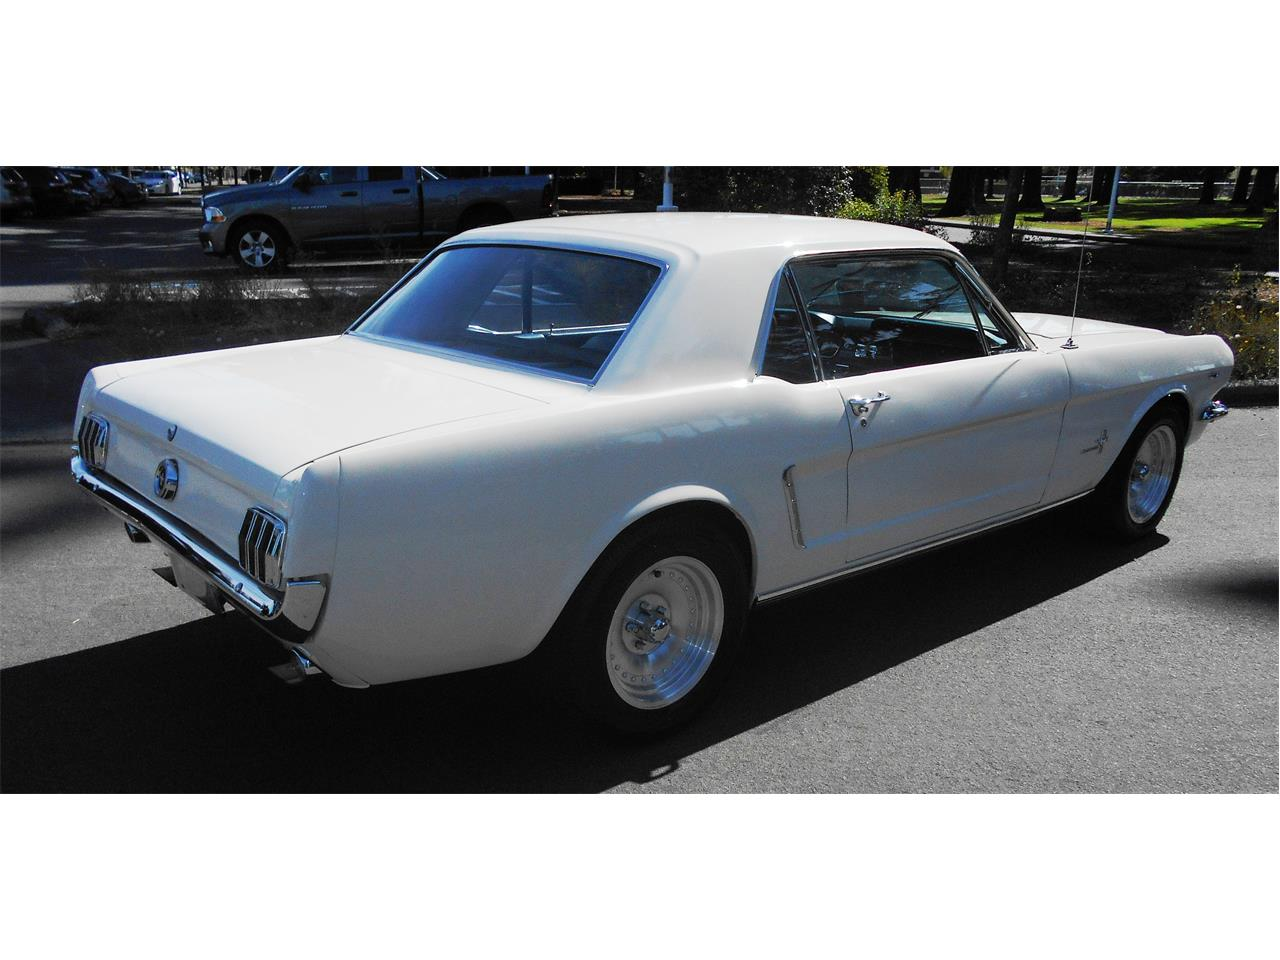 Large Picture of '65 Ford Mustang located in Washington - $20,950.00 - L3TP